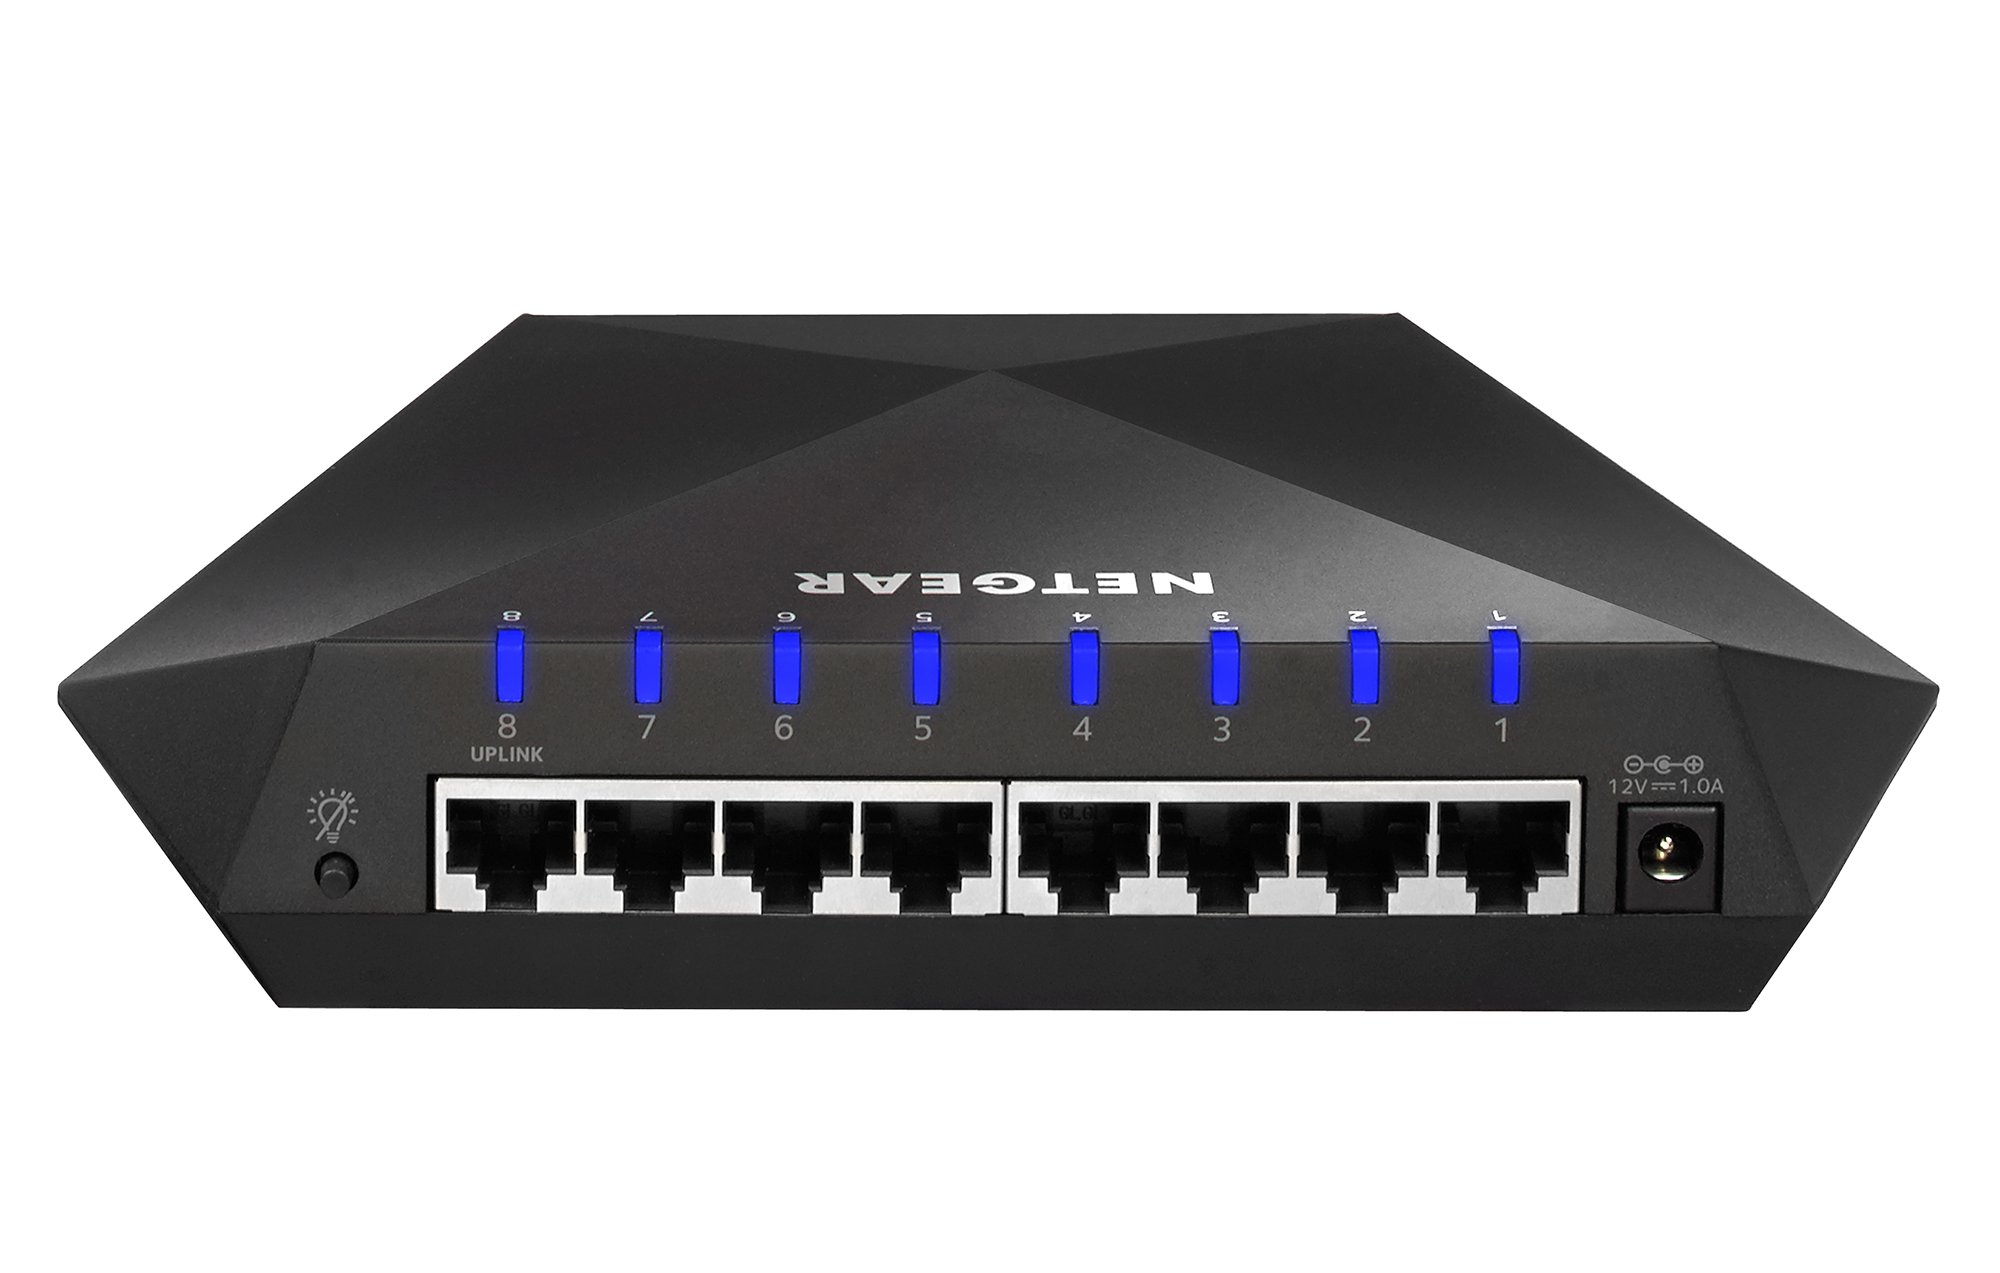 Nighthawk Switch Netgear Launches New Nighthawk Switch